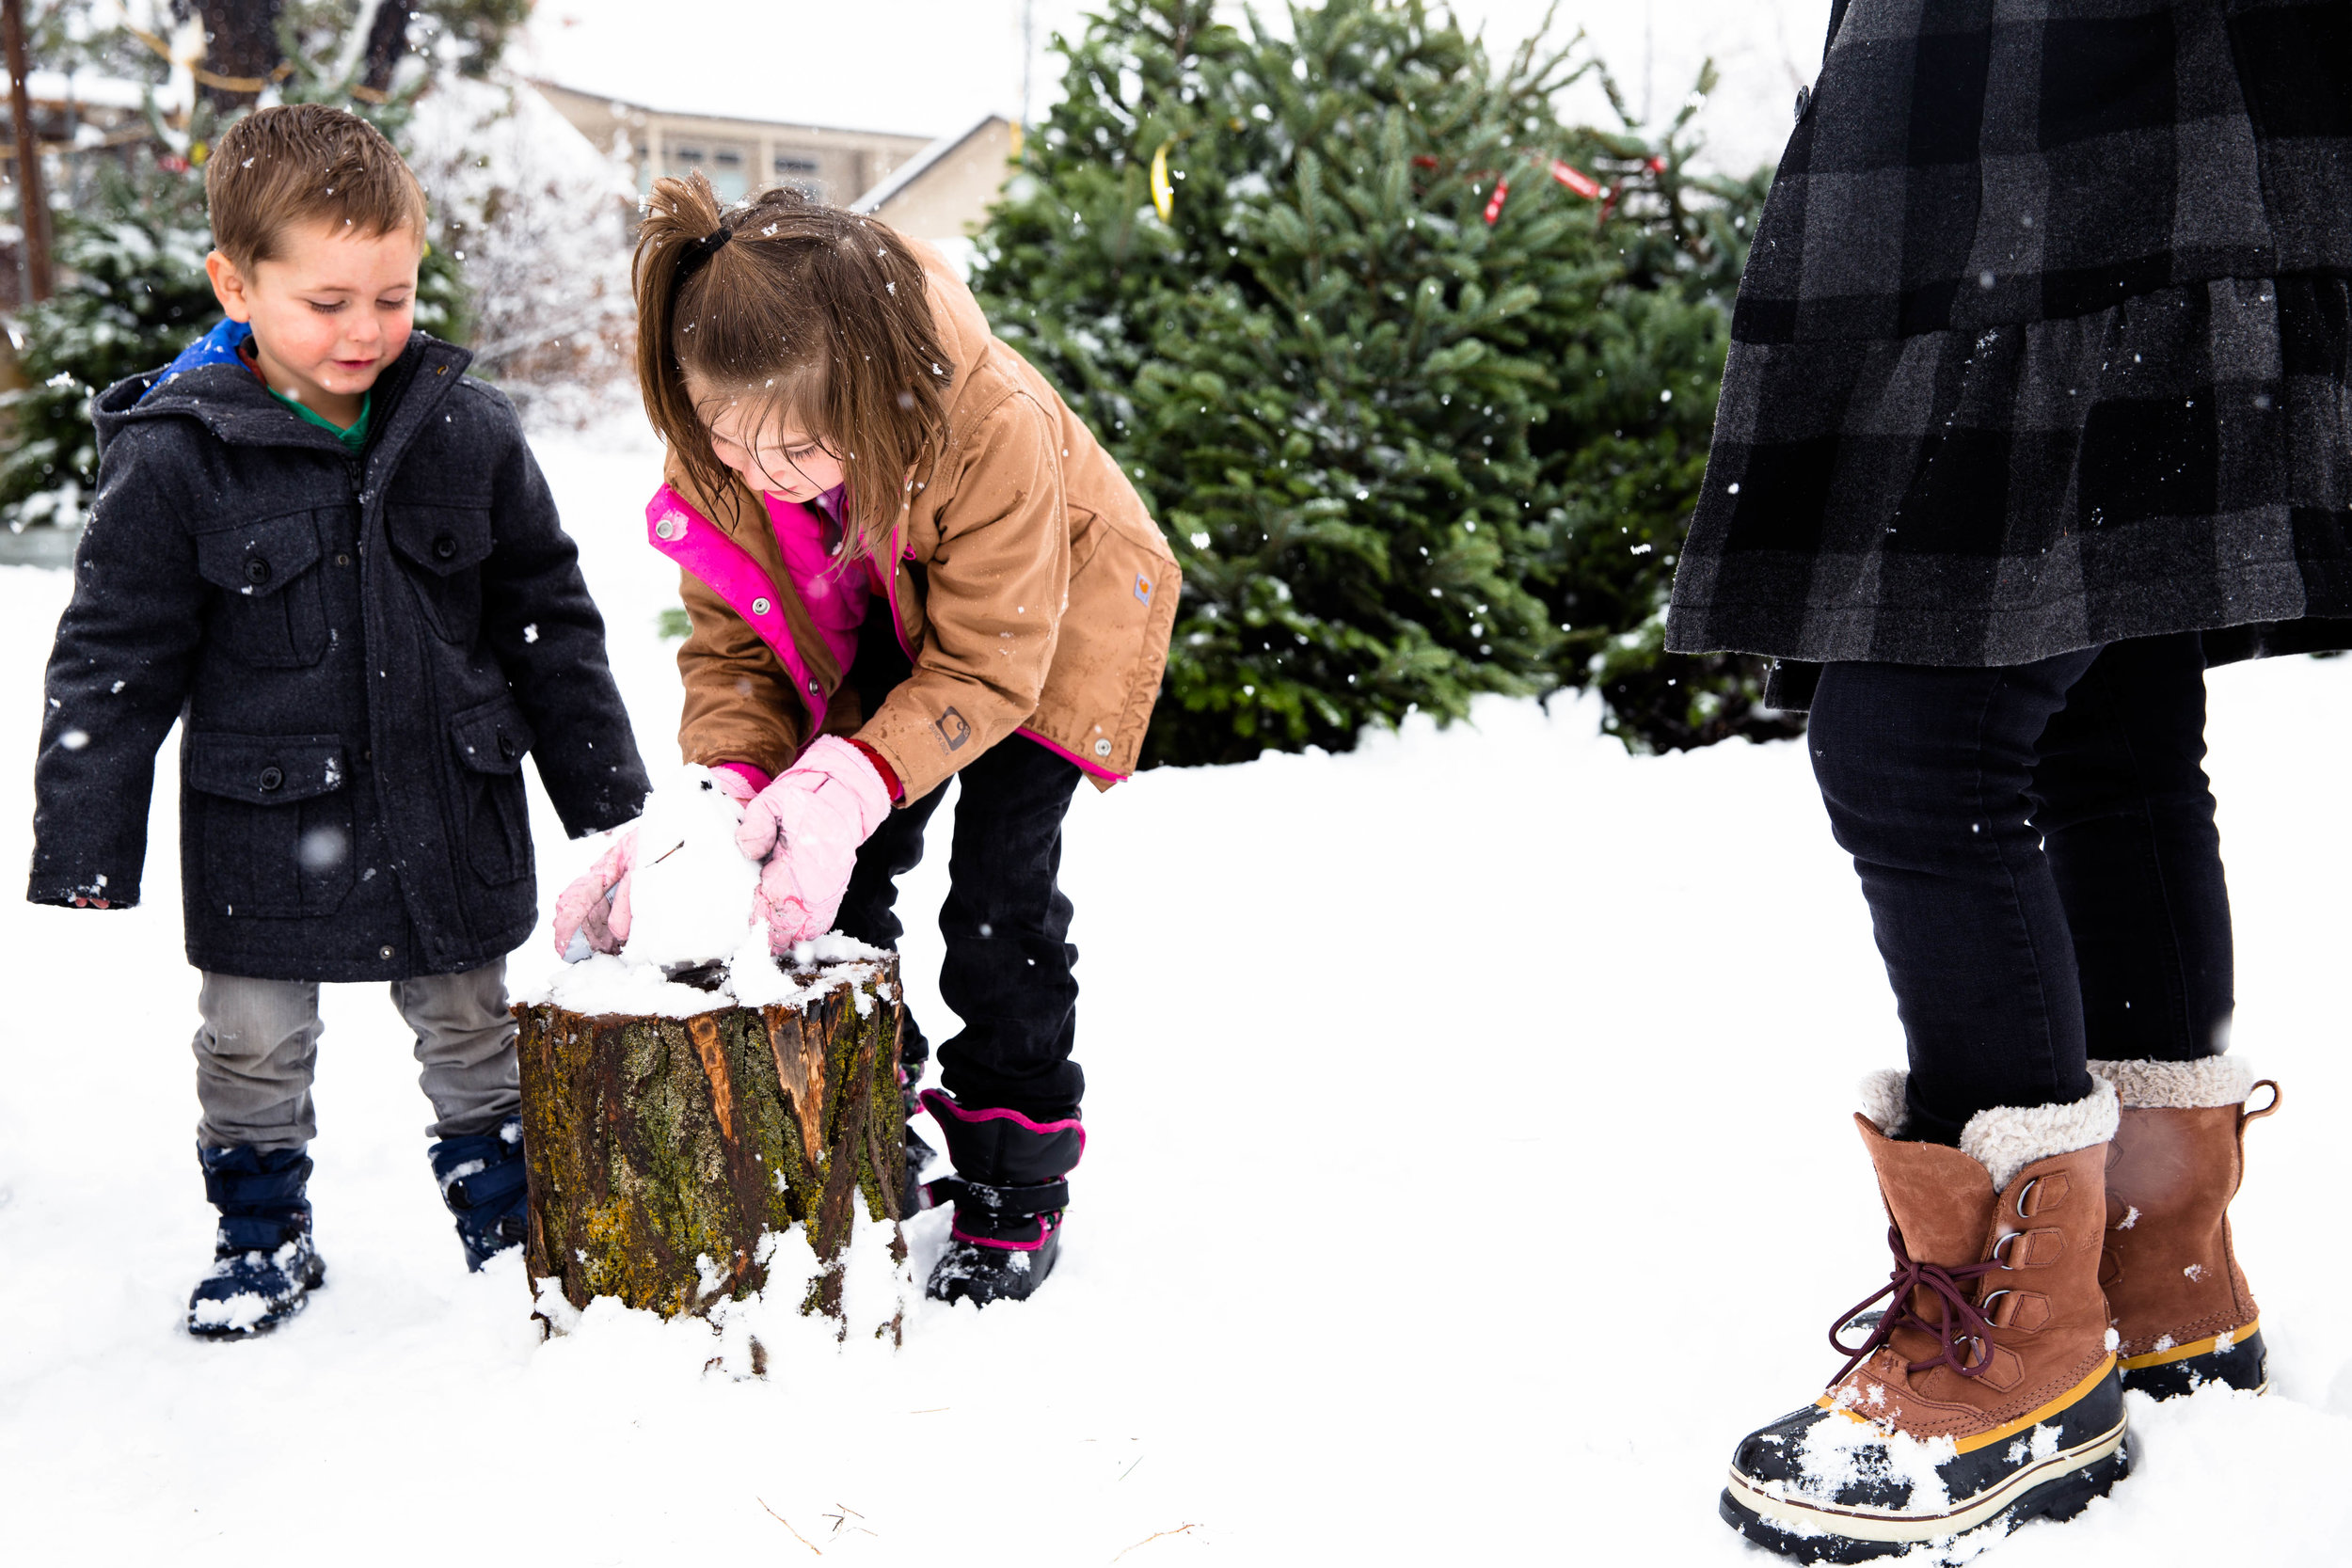 Building a tiny snowman in the snow while searching for the perfect Christmas Tree.